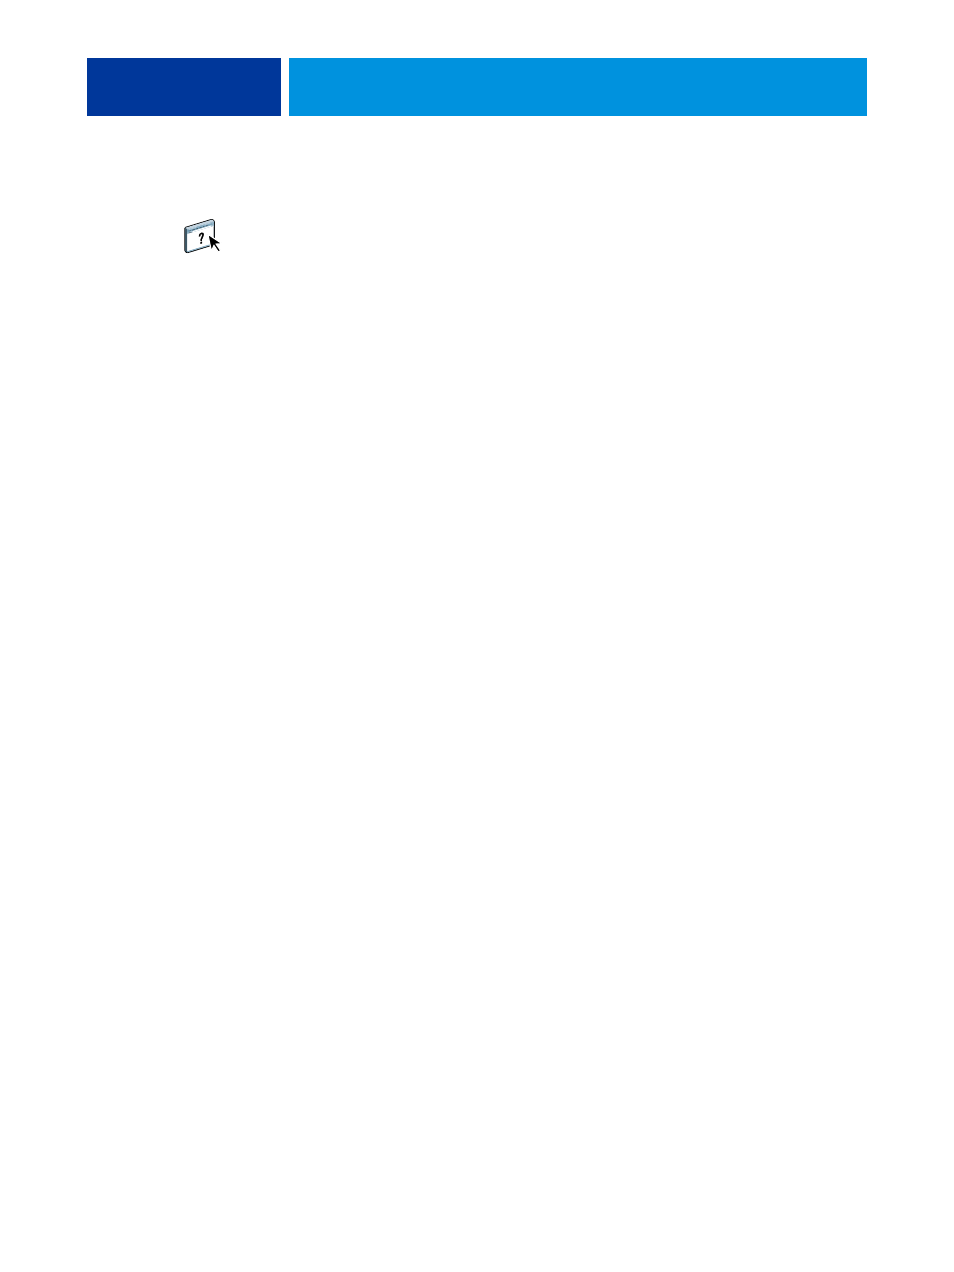 Troubleshooting | Oki CX3641 MFP User Manual | Page 24 / 37